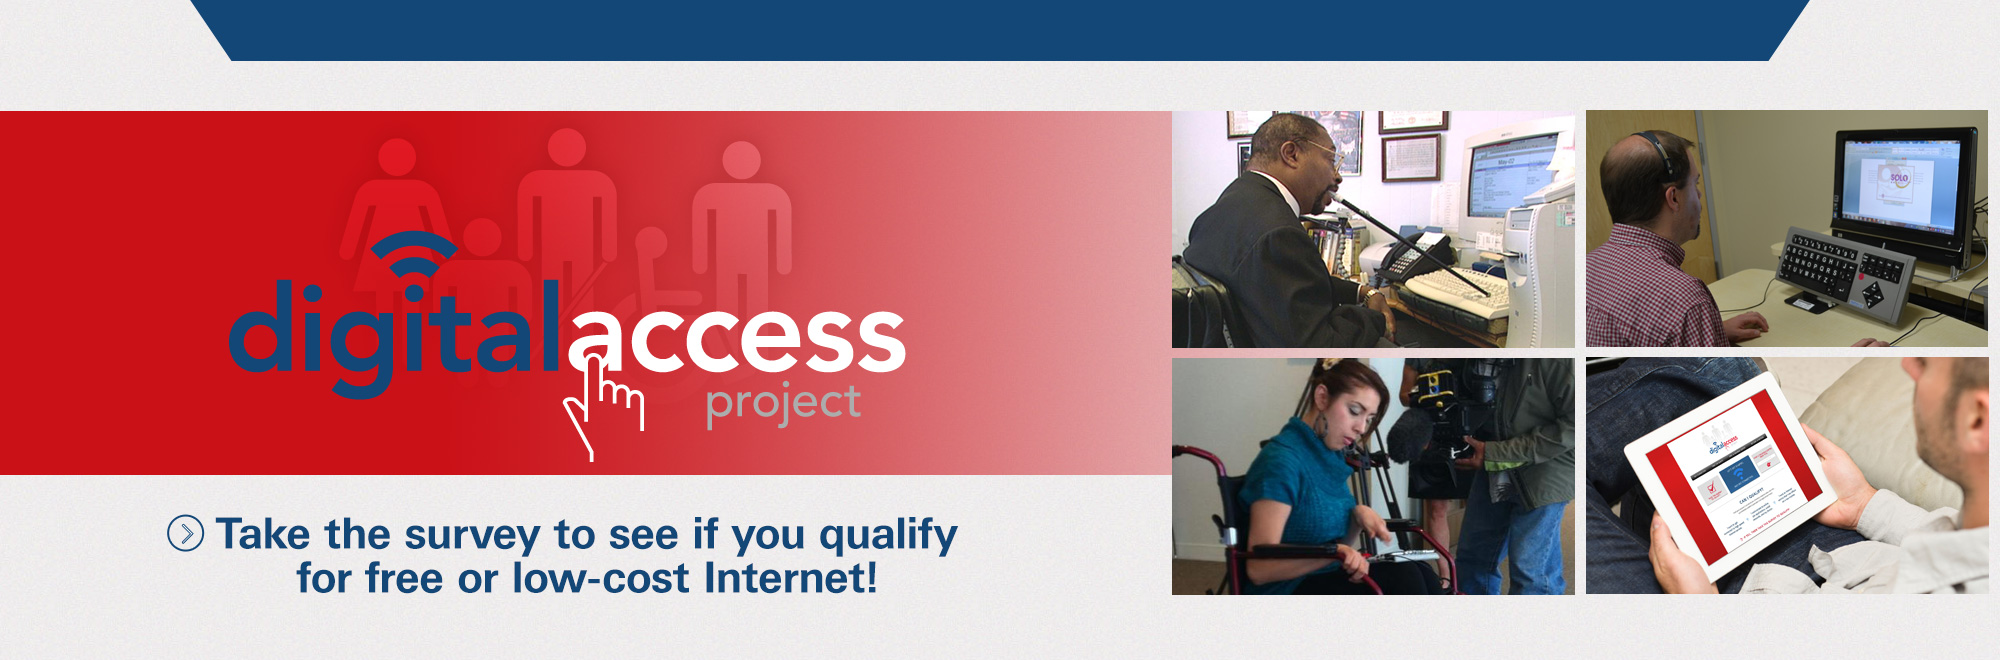 Banner of Digital Access Project. Take the survey to see if you qualify for free or low-cost Internet!